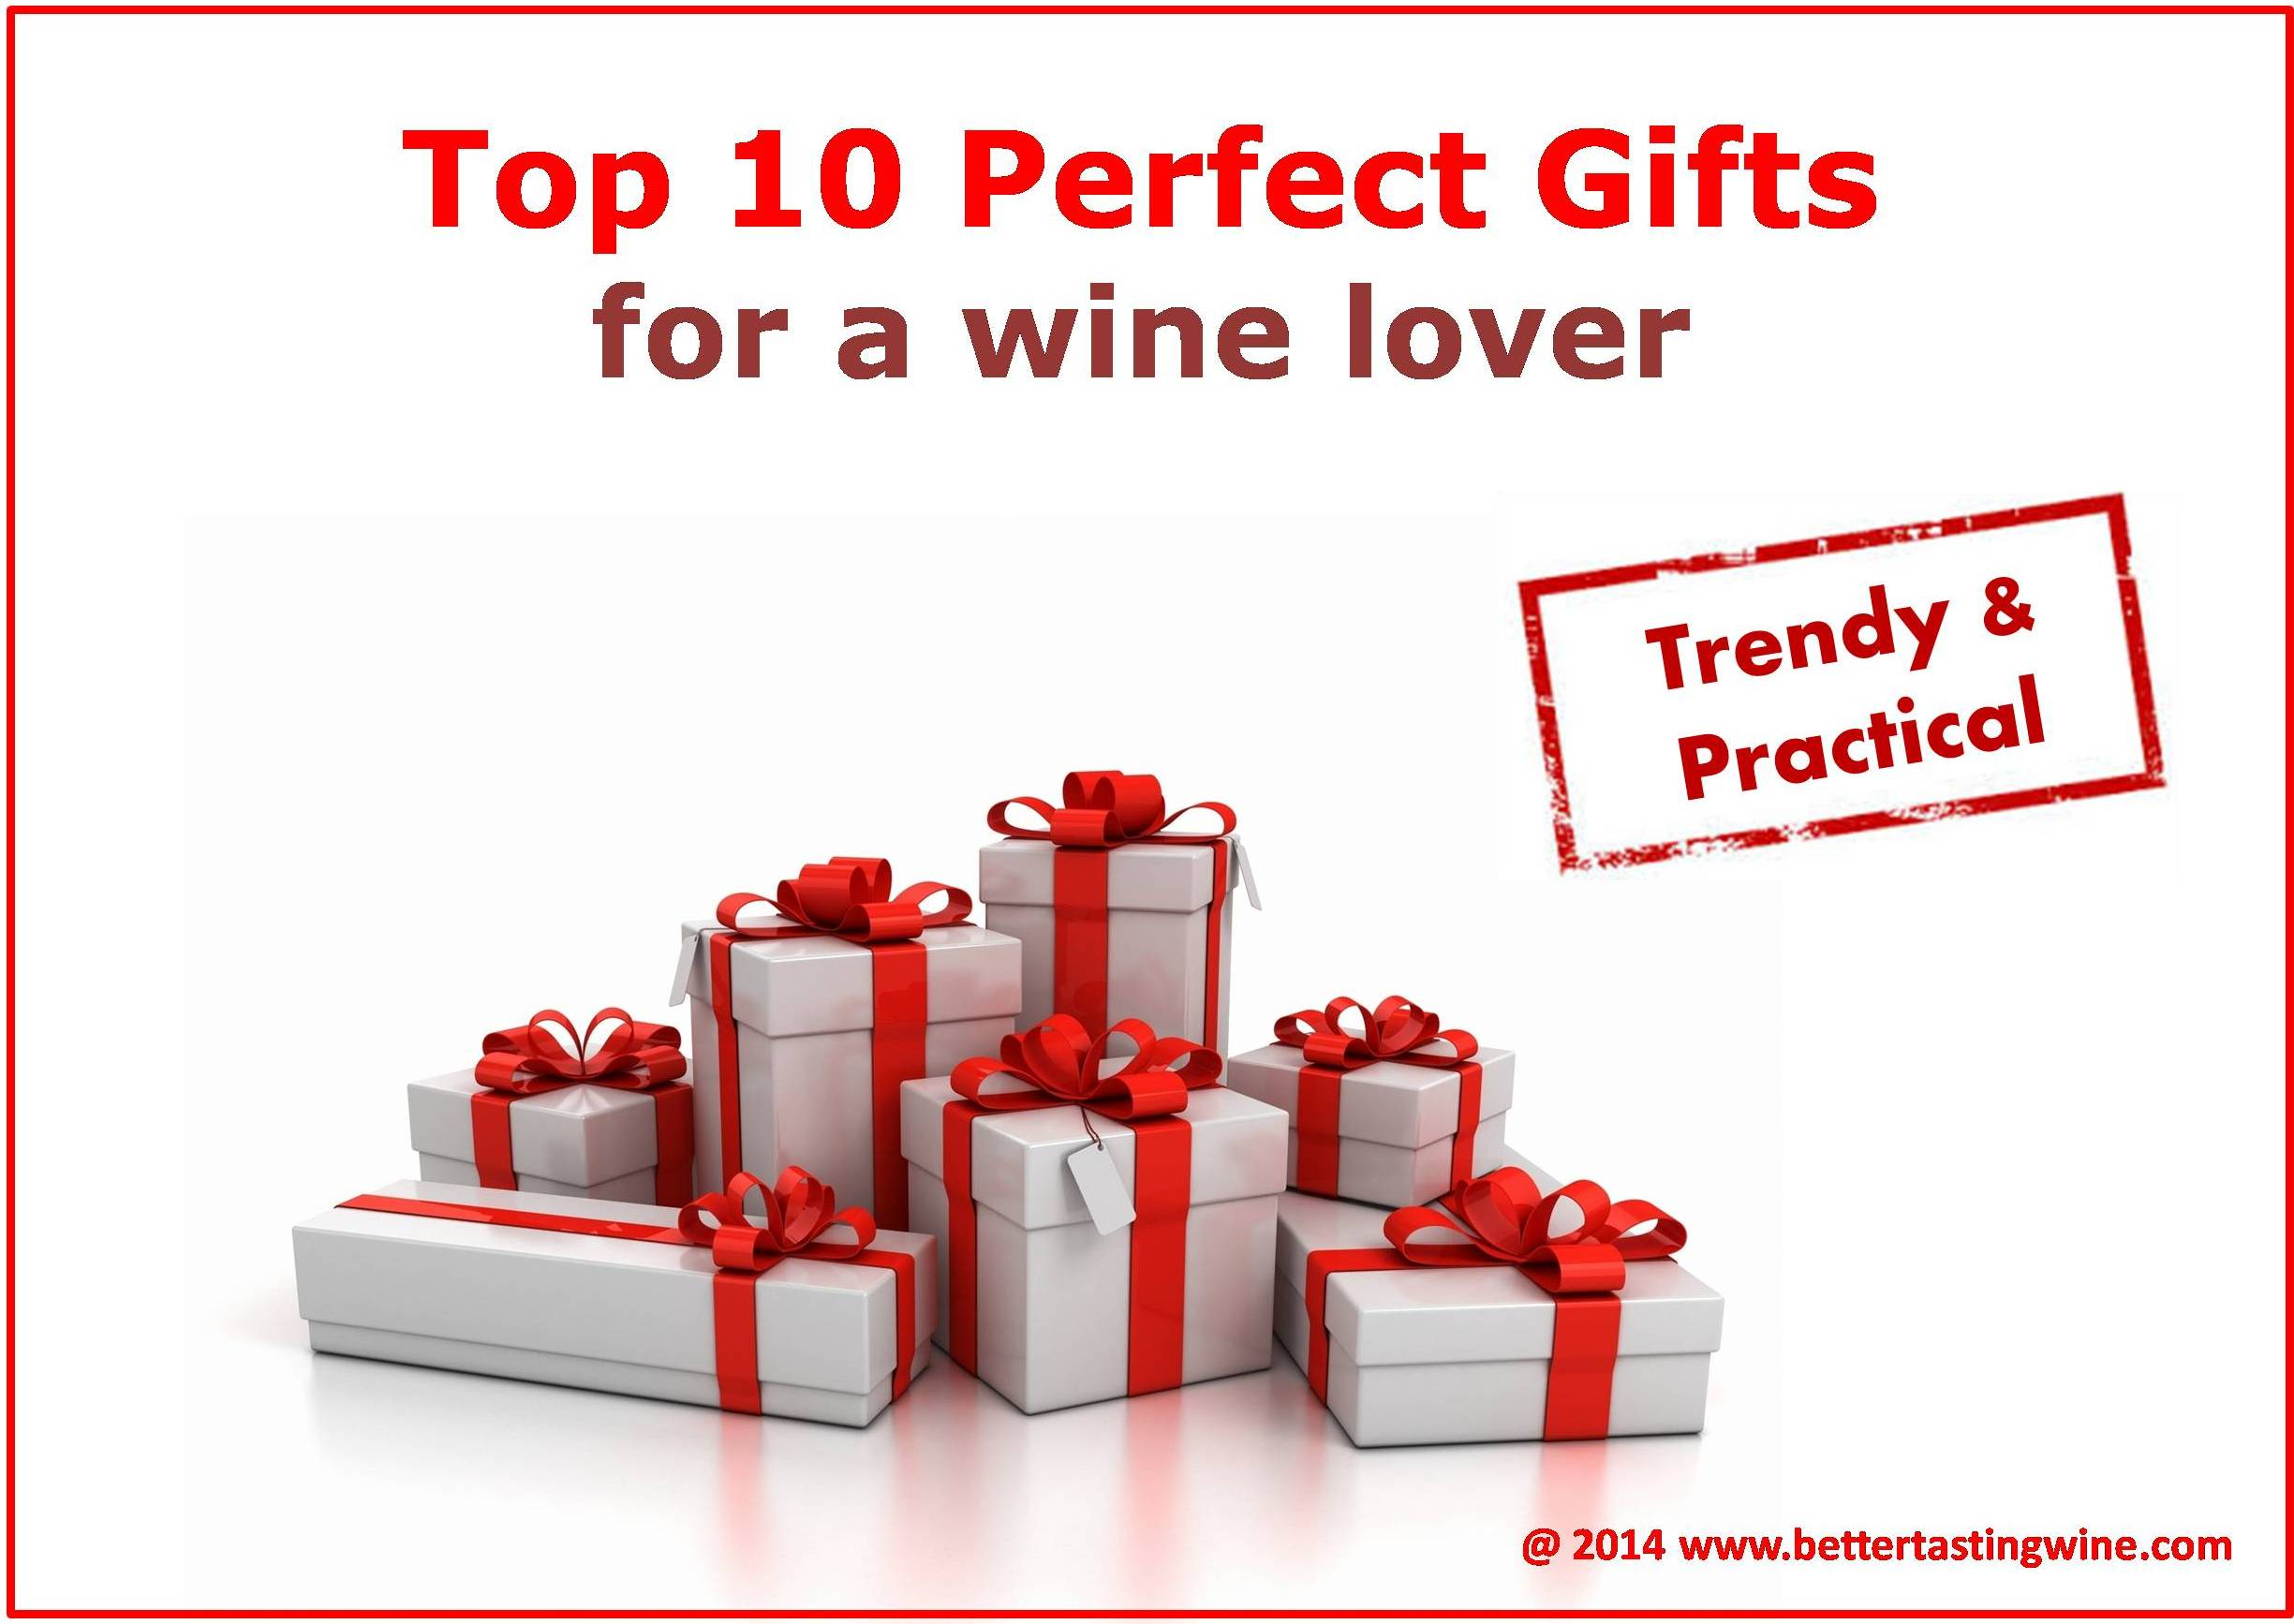 Top Ten Must-Have Wine Gifts for Wine Lovers